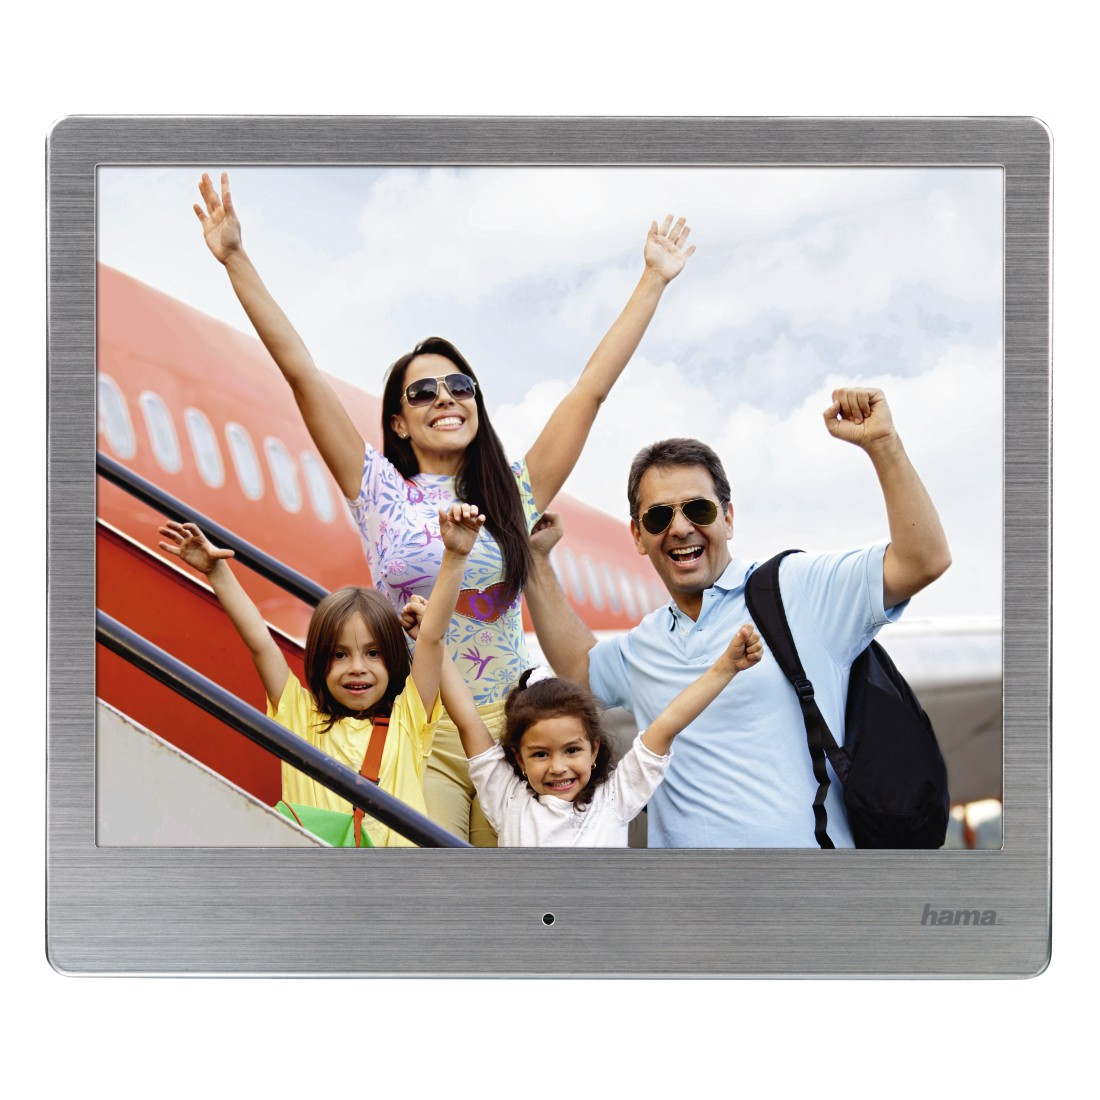 "abx6 High-Res Image 6 - Hama, ""8SLB"" Digital Photo Frame, 20.32 cm (8.0""), slim steel, 1024 x 768 px"